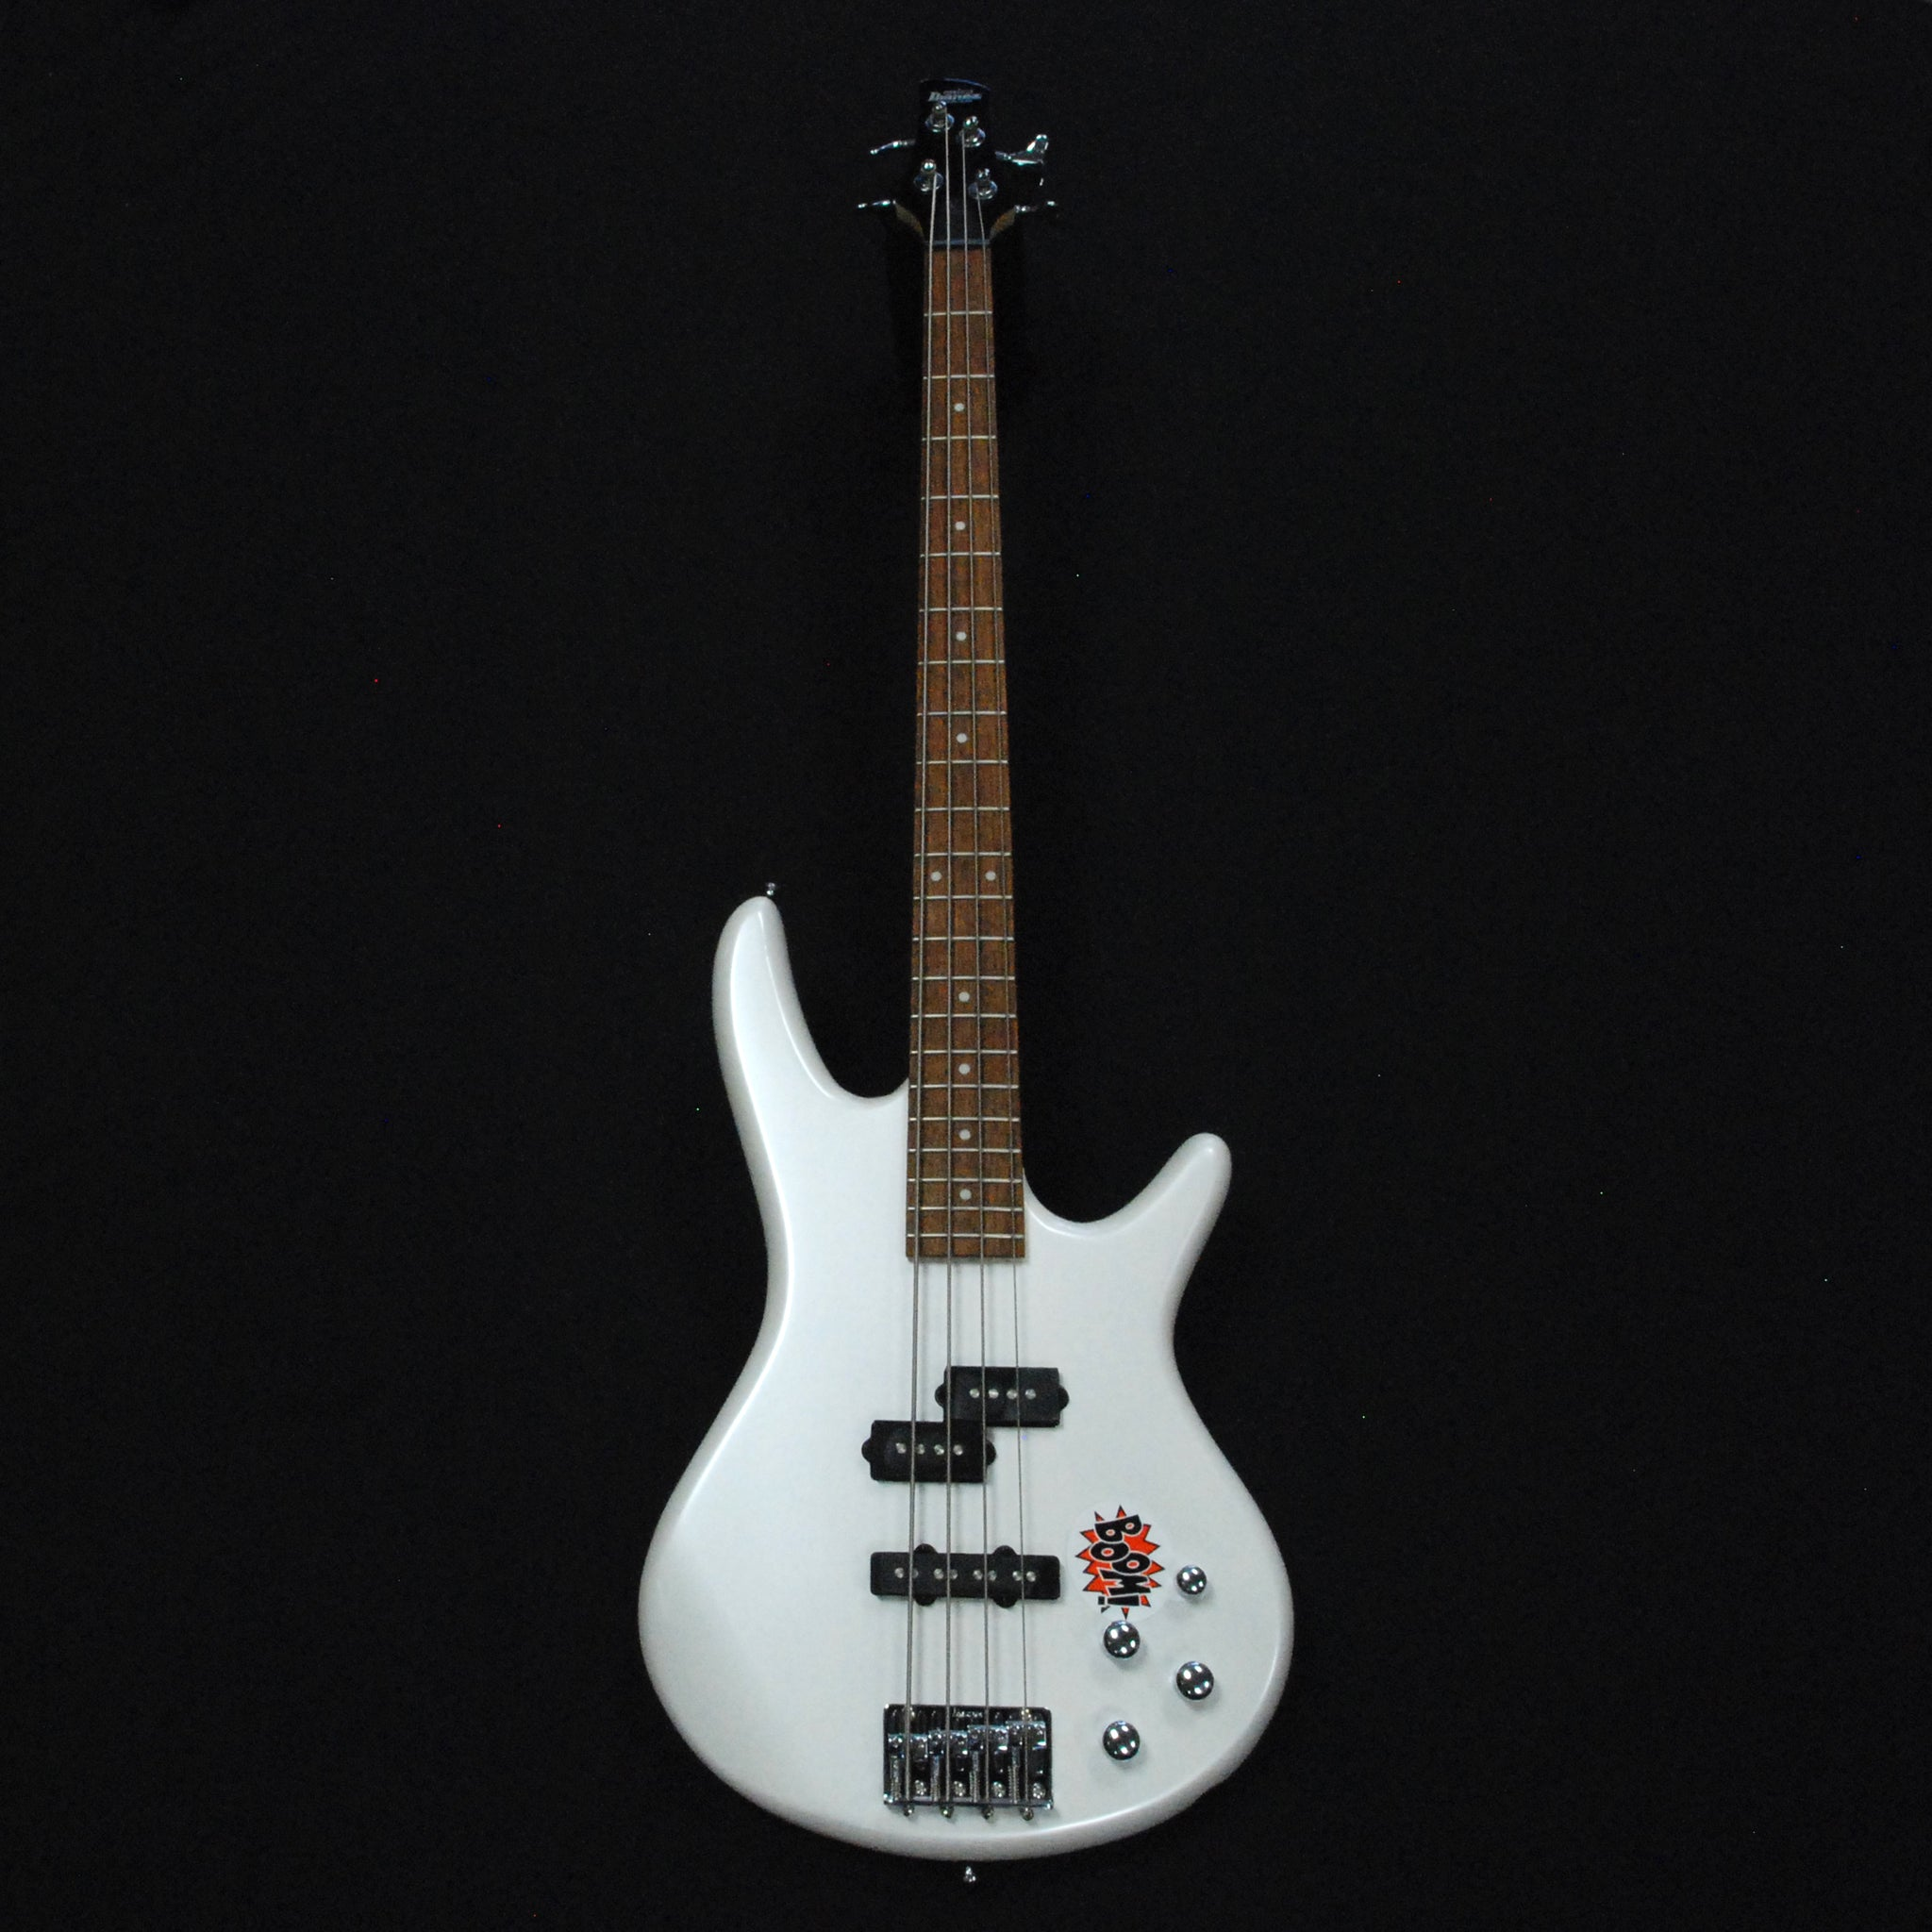 Shop online for Ibanez GSR200PW 4 String Electric Bass Guitar Pearl White today. Now available for purchase from Midlothian Music of Orland Park, Illinois, USA